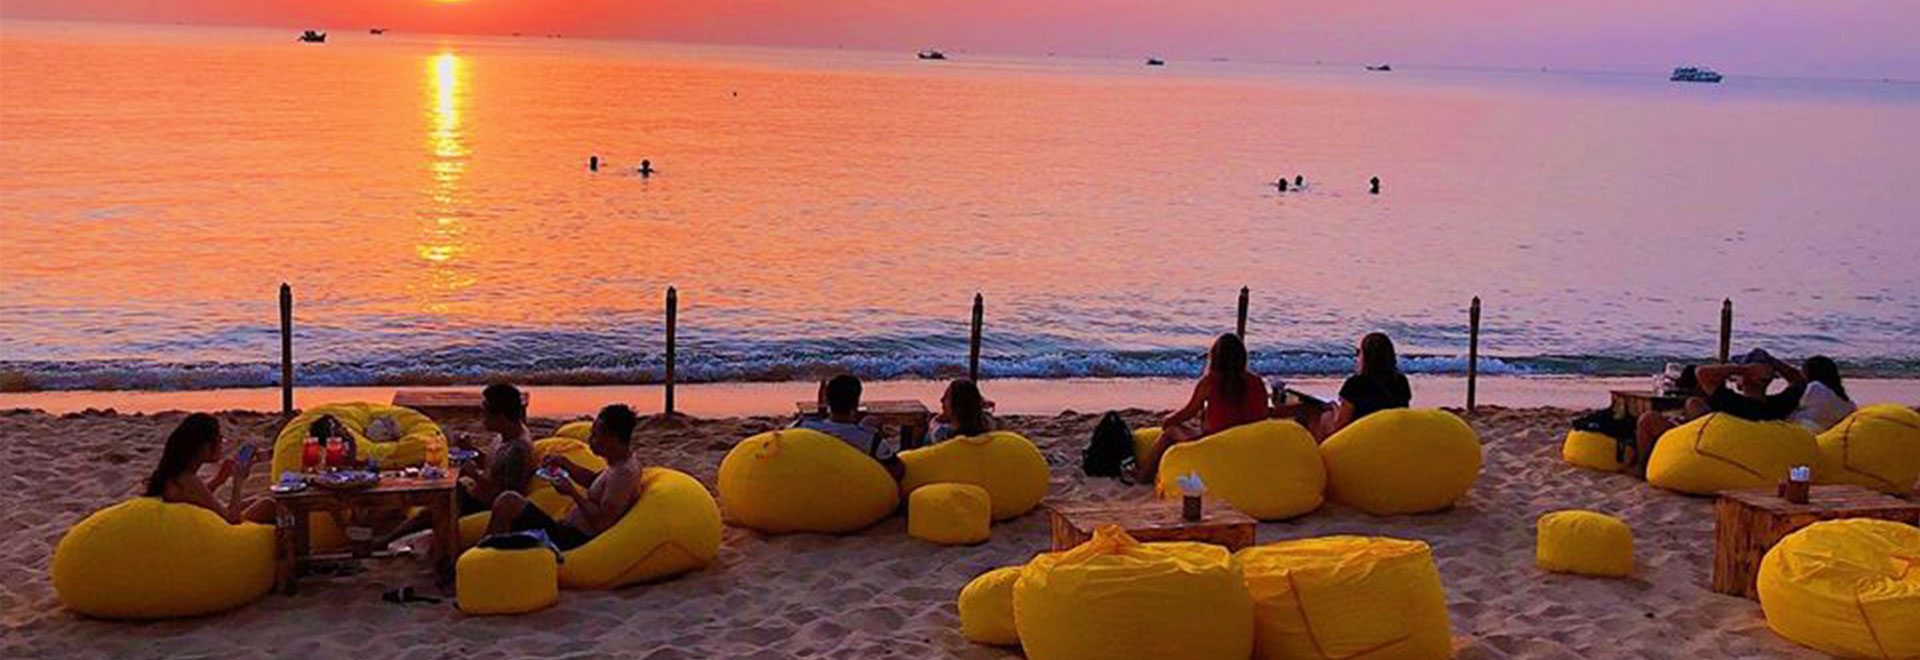 orange-resort-phu-quoc-banner-1.jpg